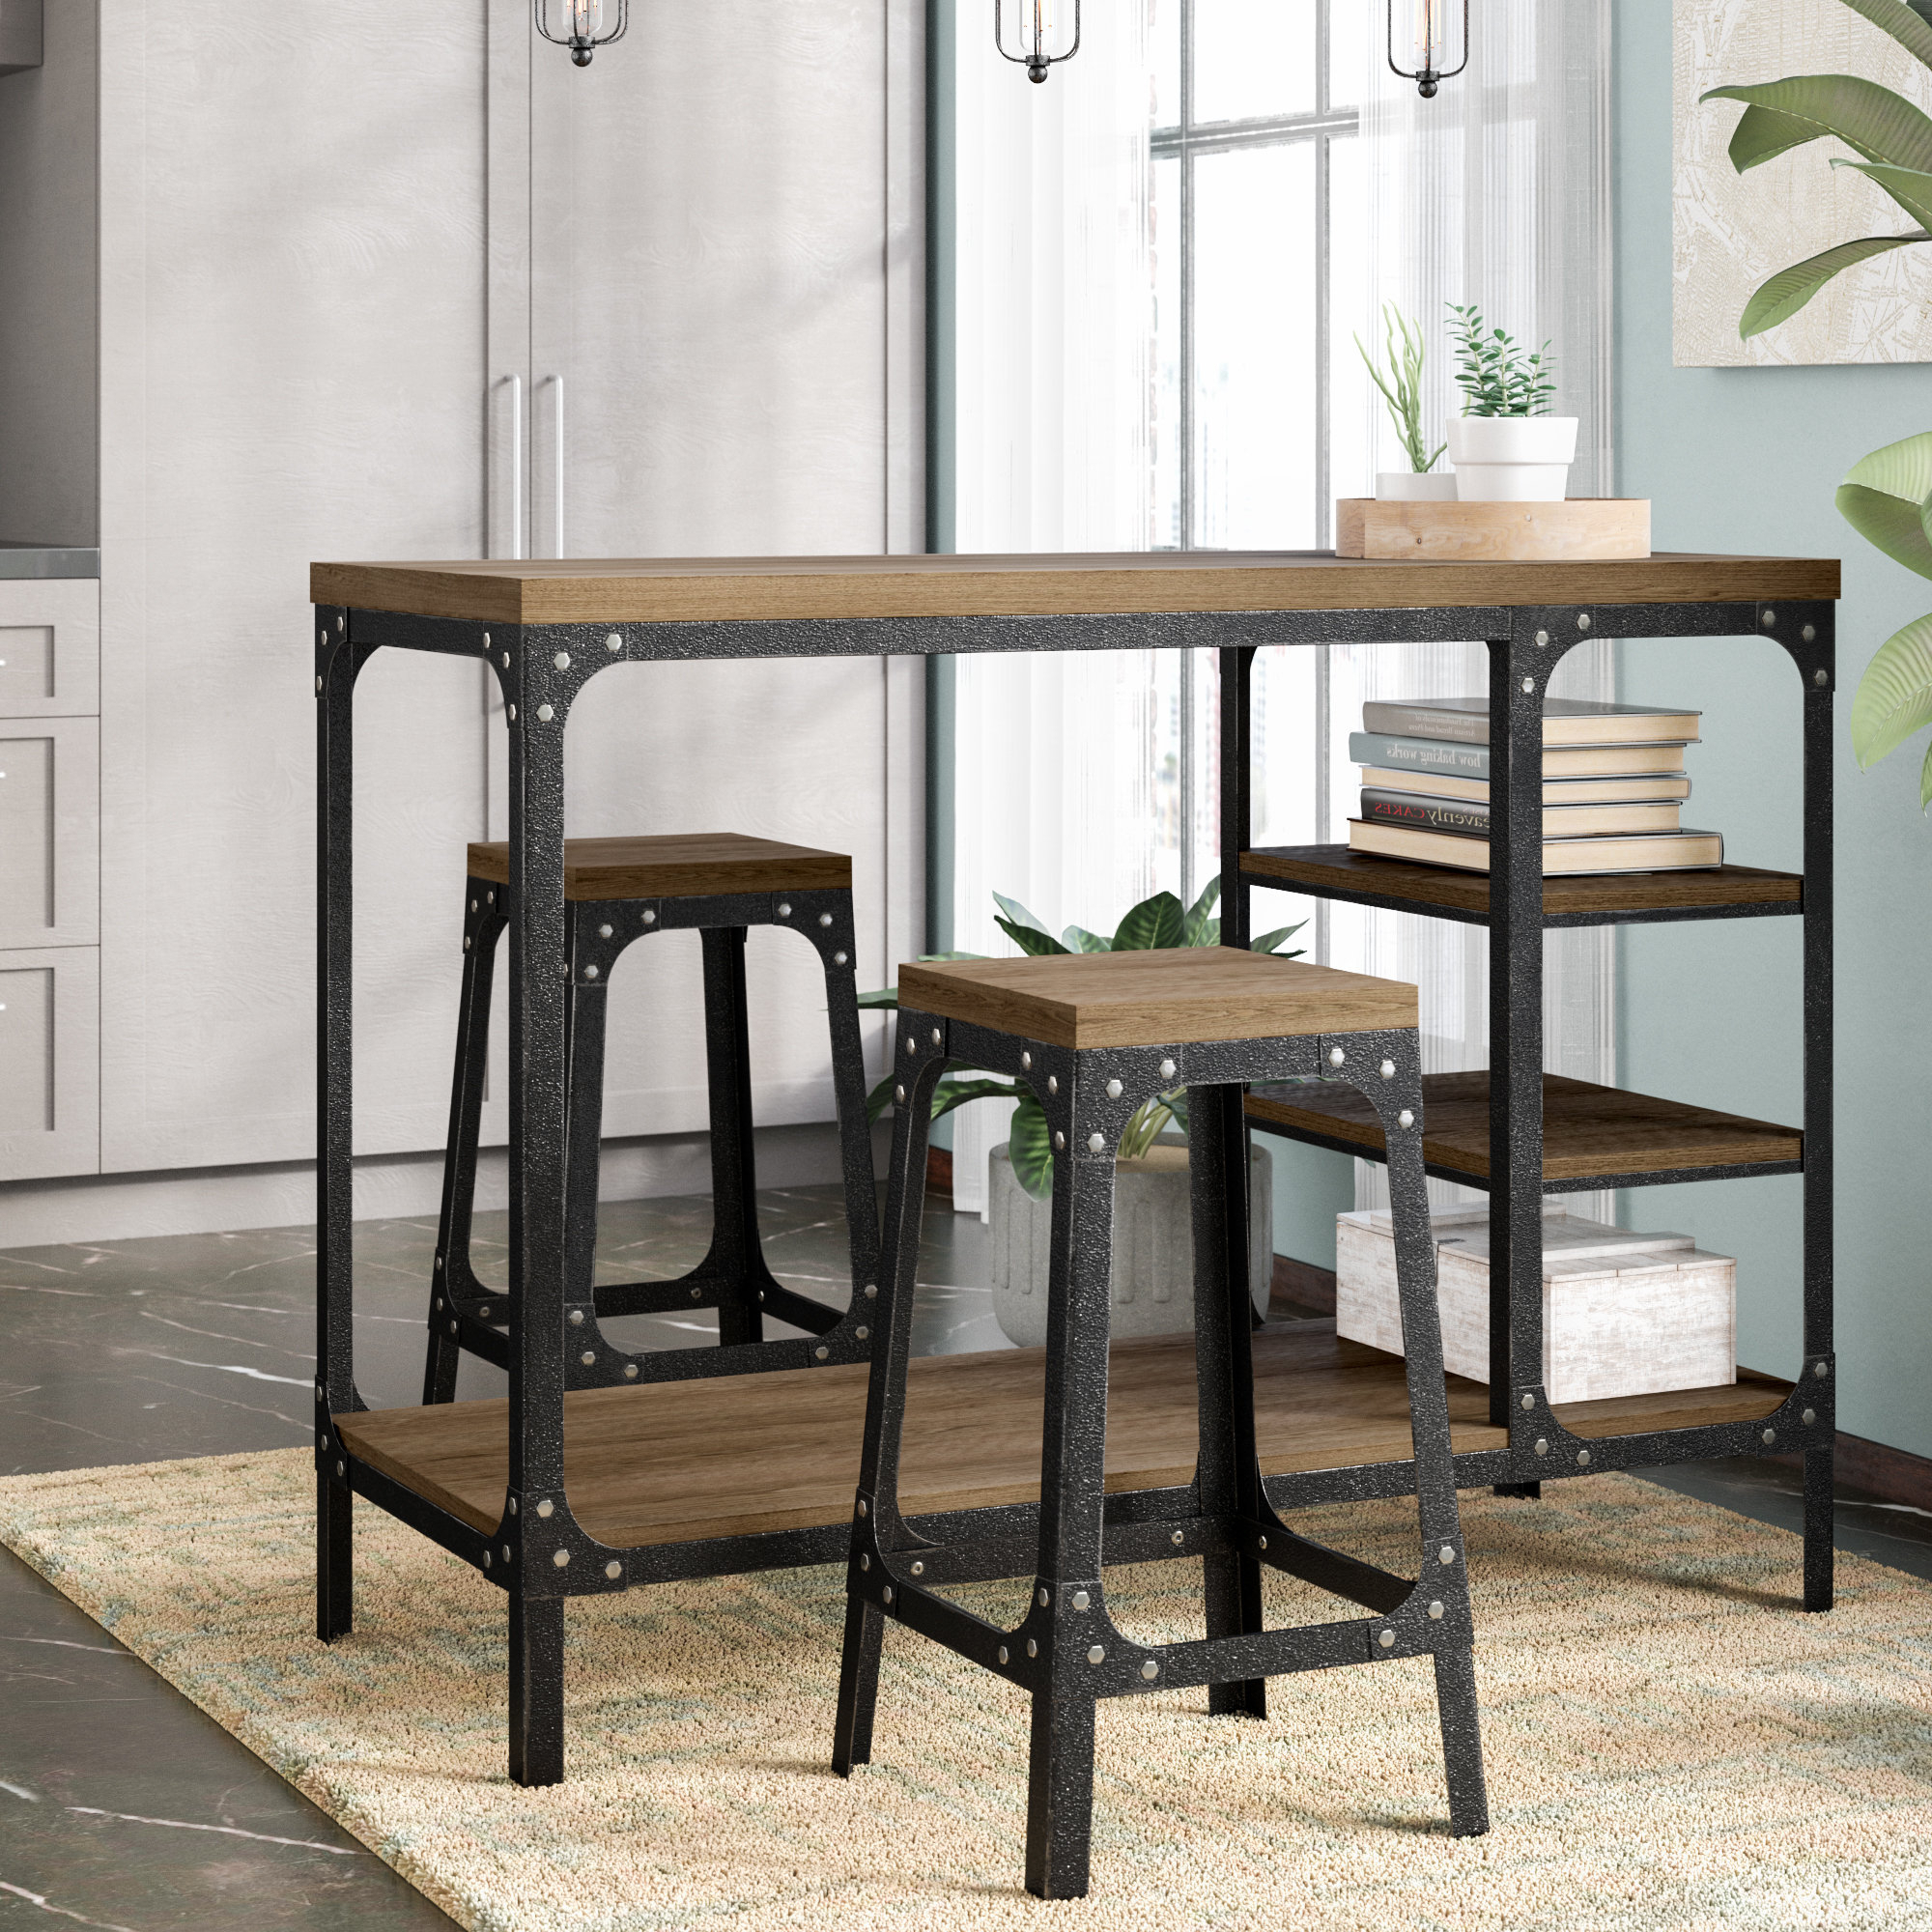 2018 Wallflower 3 Piece Dining Sets Throughout Williston Forge Terence 3 Piece Breakfast Nook Dining Set (Gallery 10 of 20)